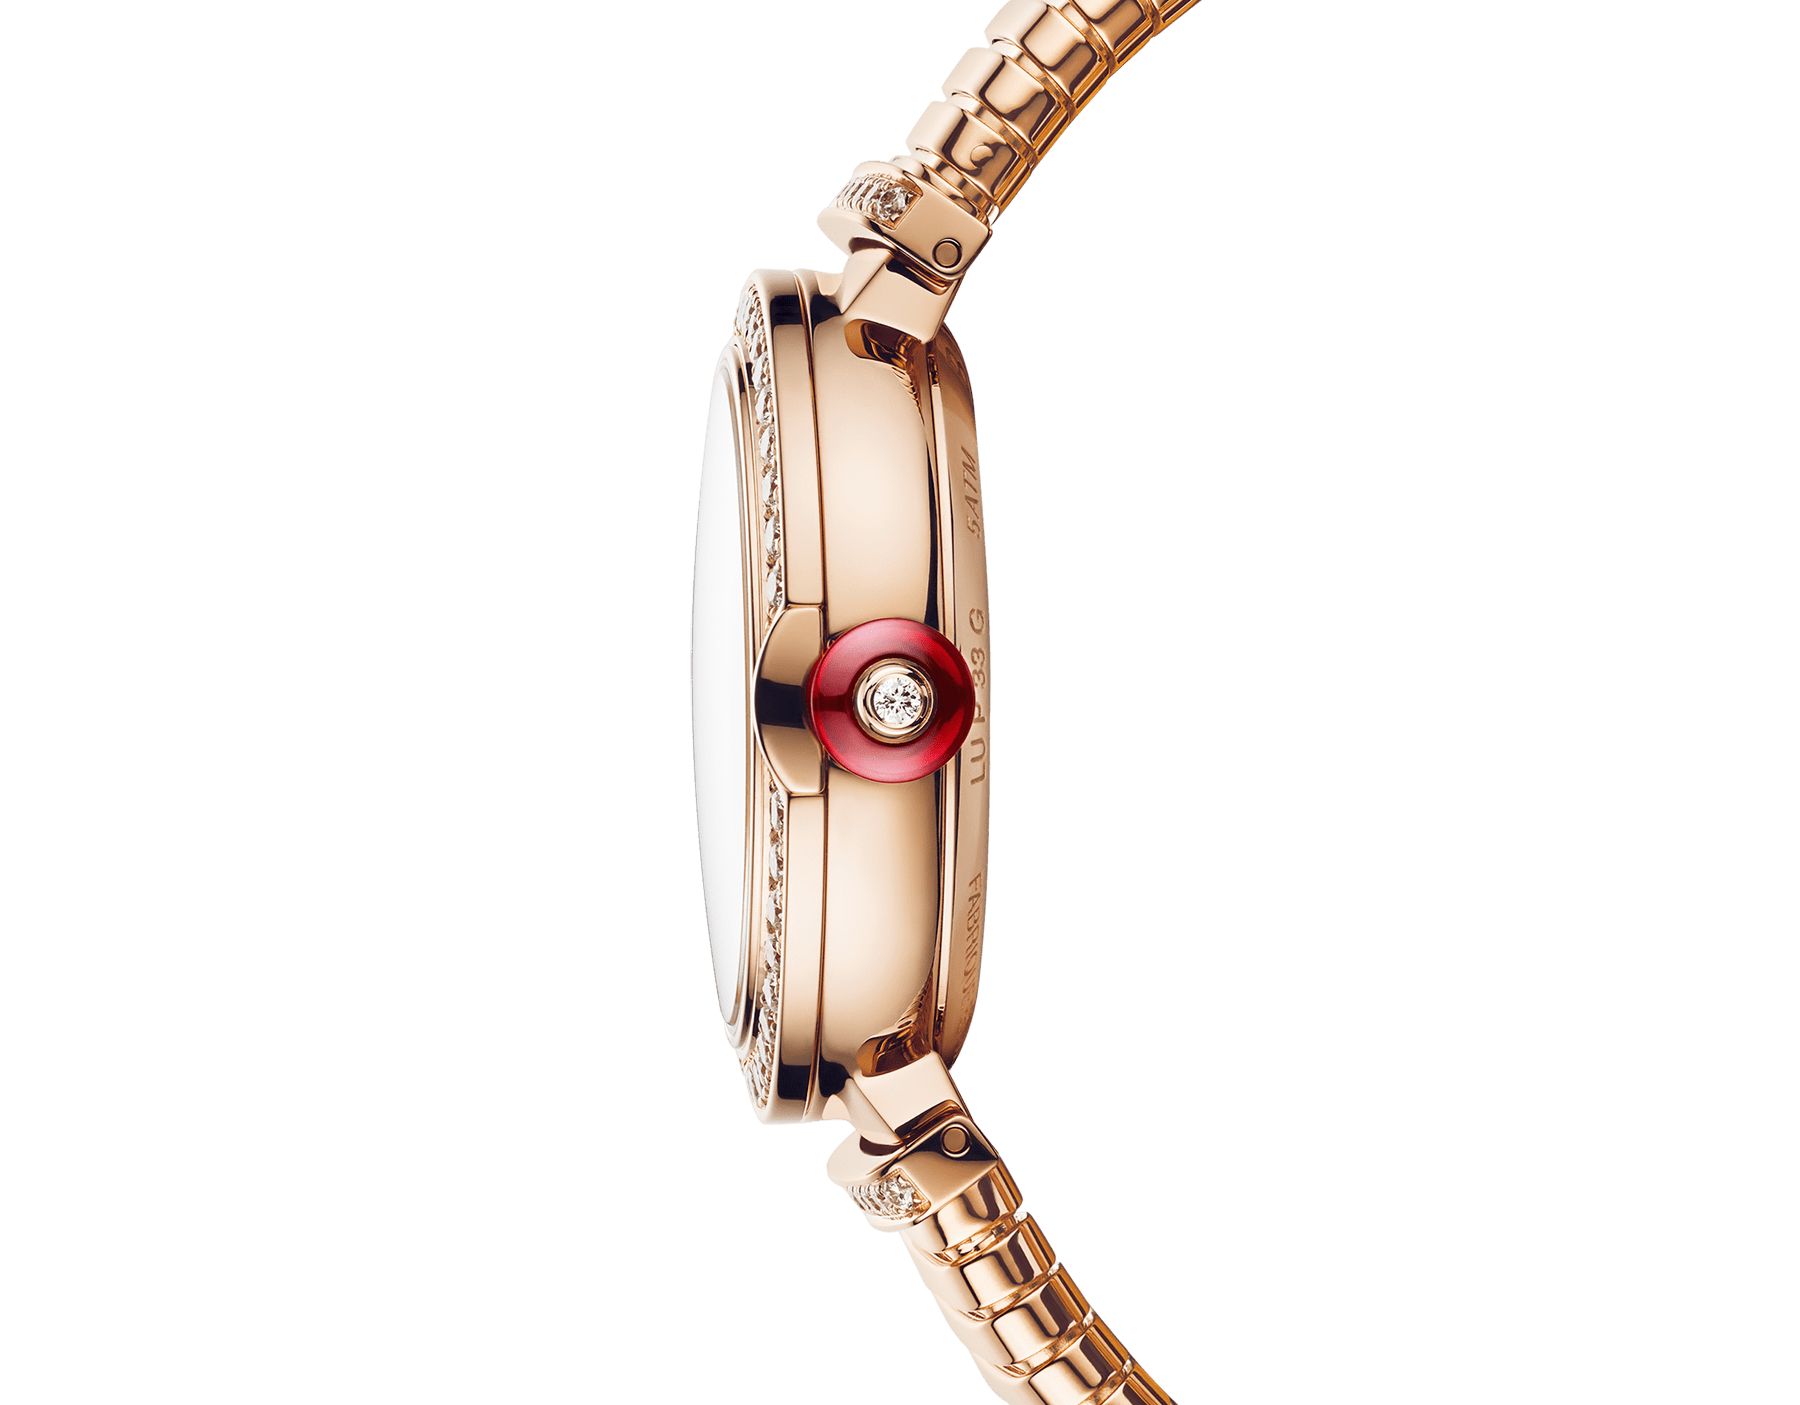 LVCEA Tubogas watch with 18 kt rose gold case set with diamonds, white mother-of-pearl dial, diamond indexes and 18 kt rose gold tubogas bracelet 103034 image 3